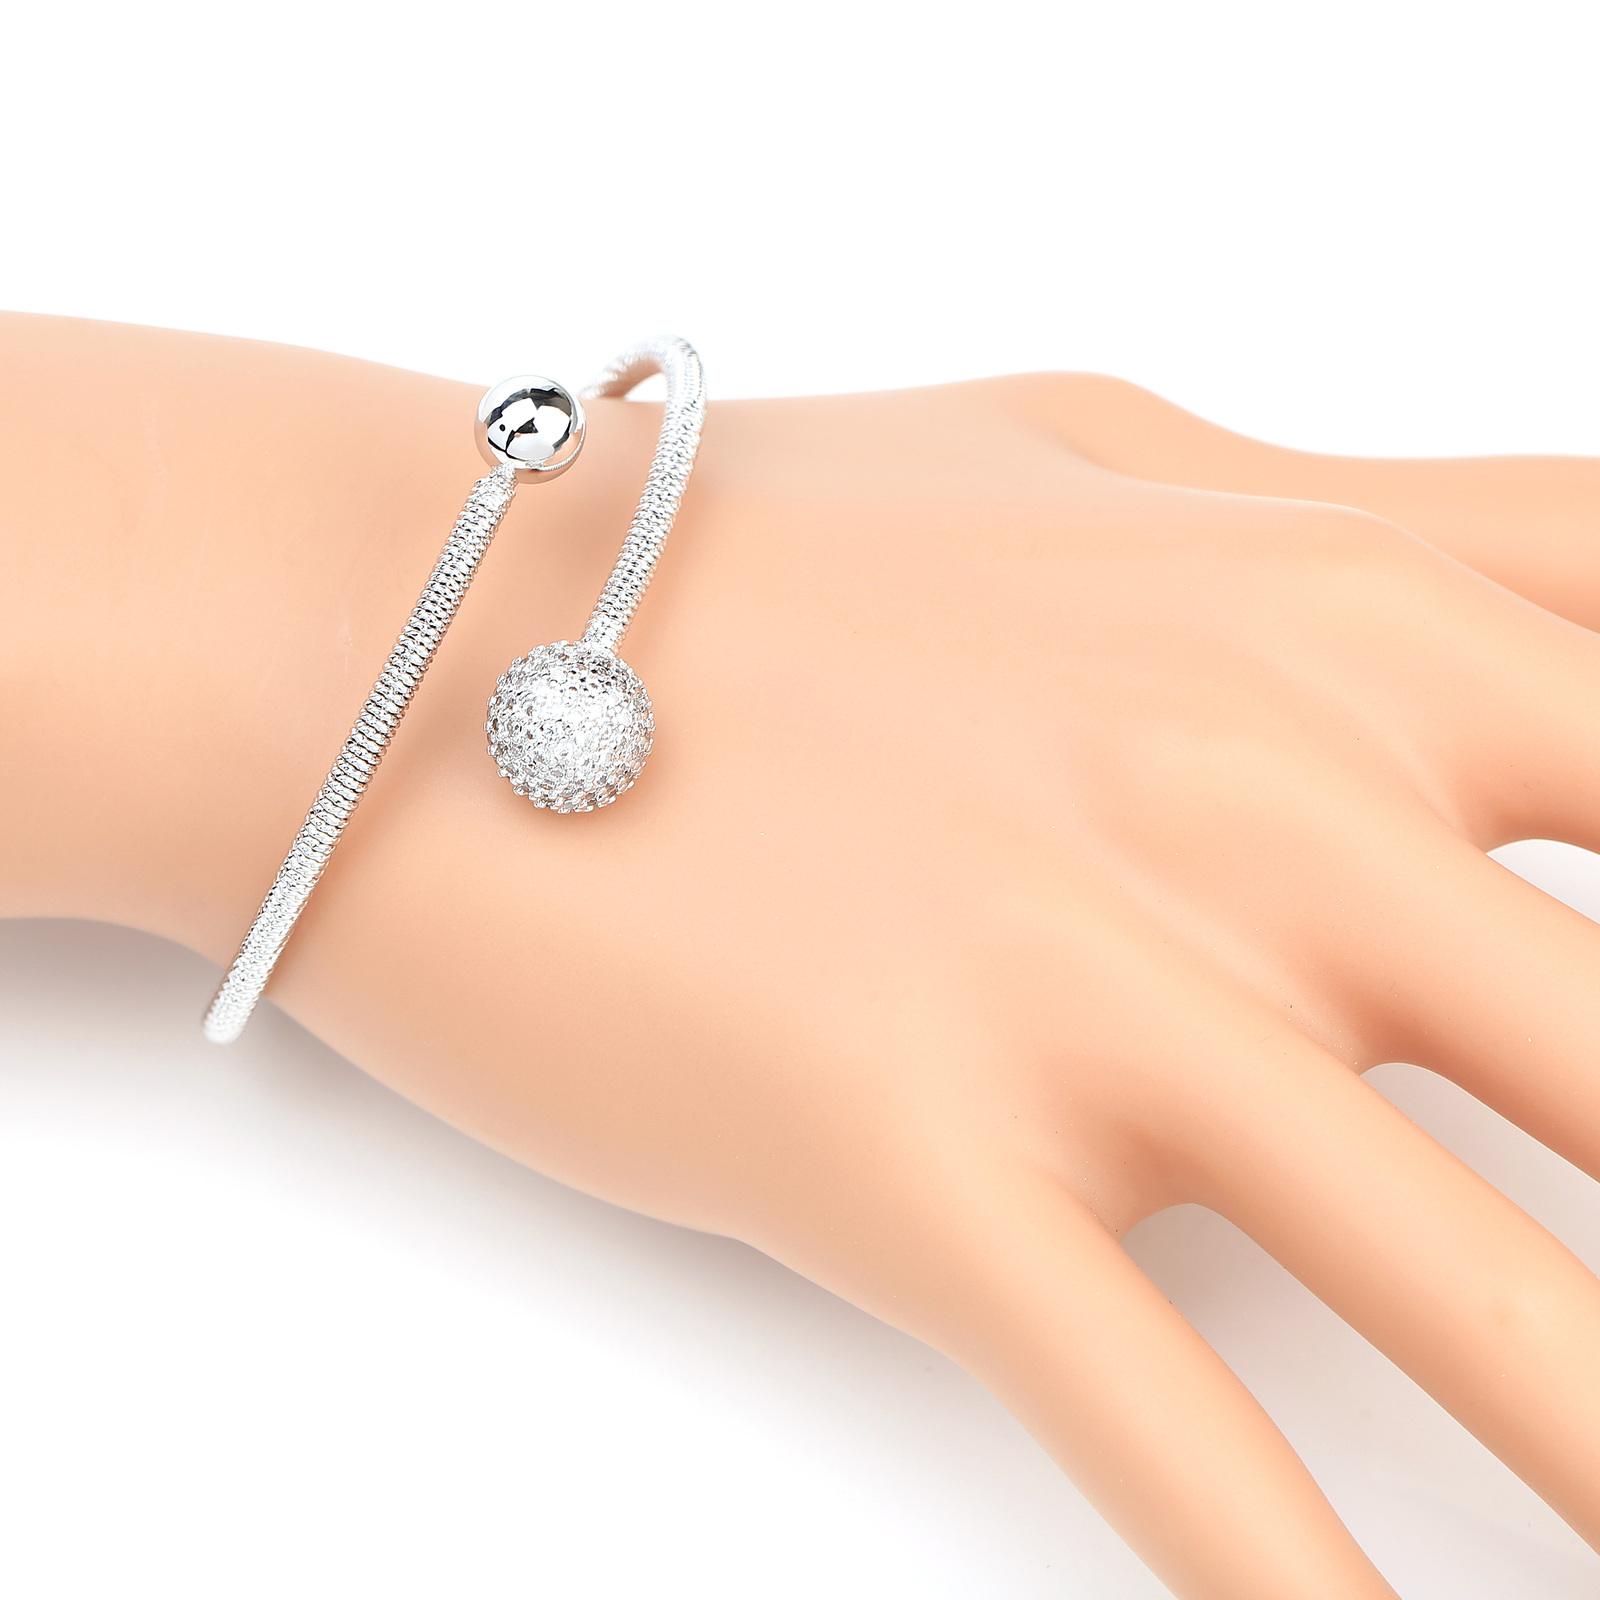 Primary image for UE- Designer Silver Tone Wrap Bangle Bracelet With Swarovski Style Crystals